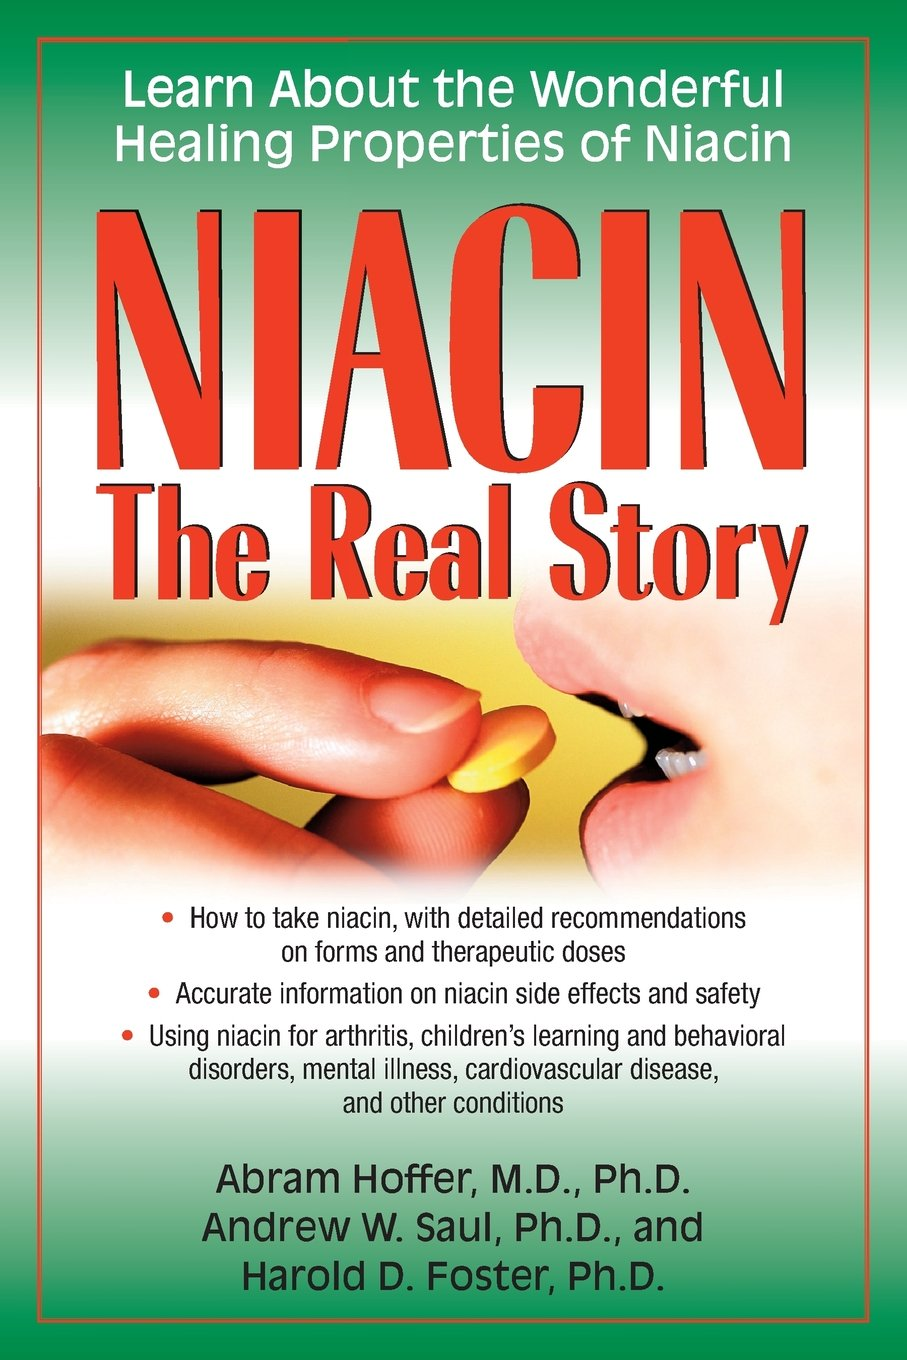 Niacin Story Wonderful Healing Properties product image